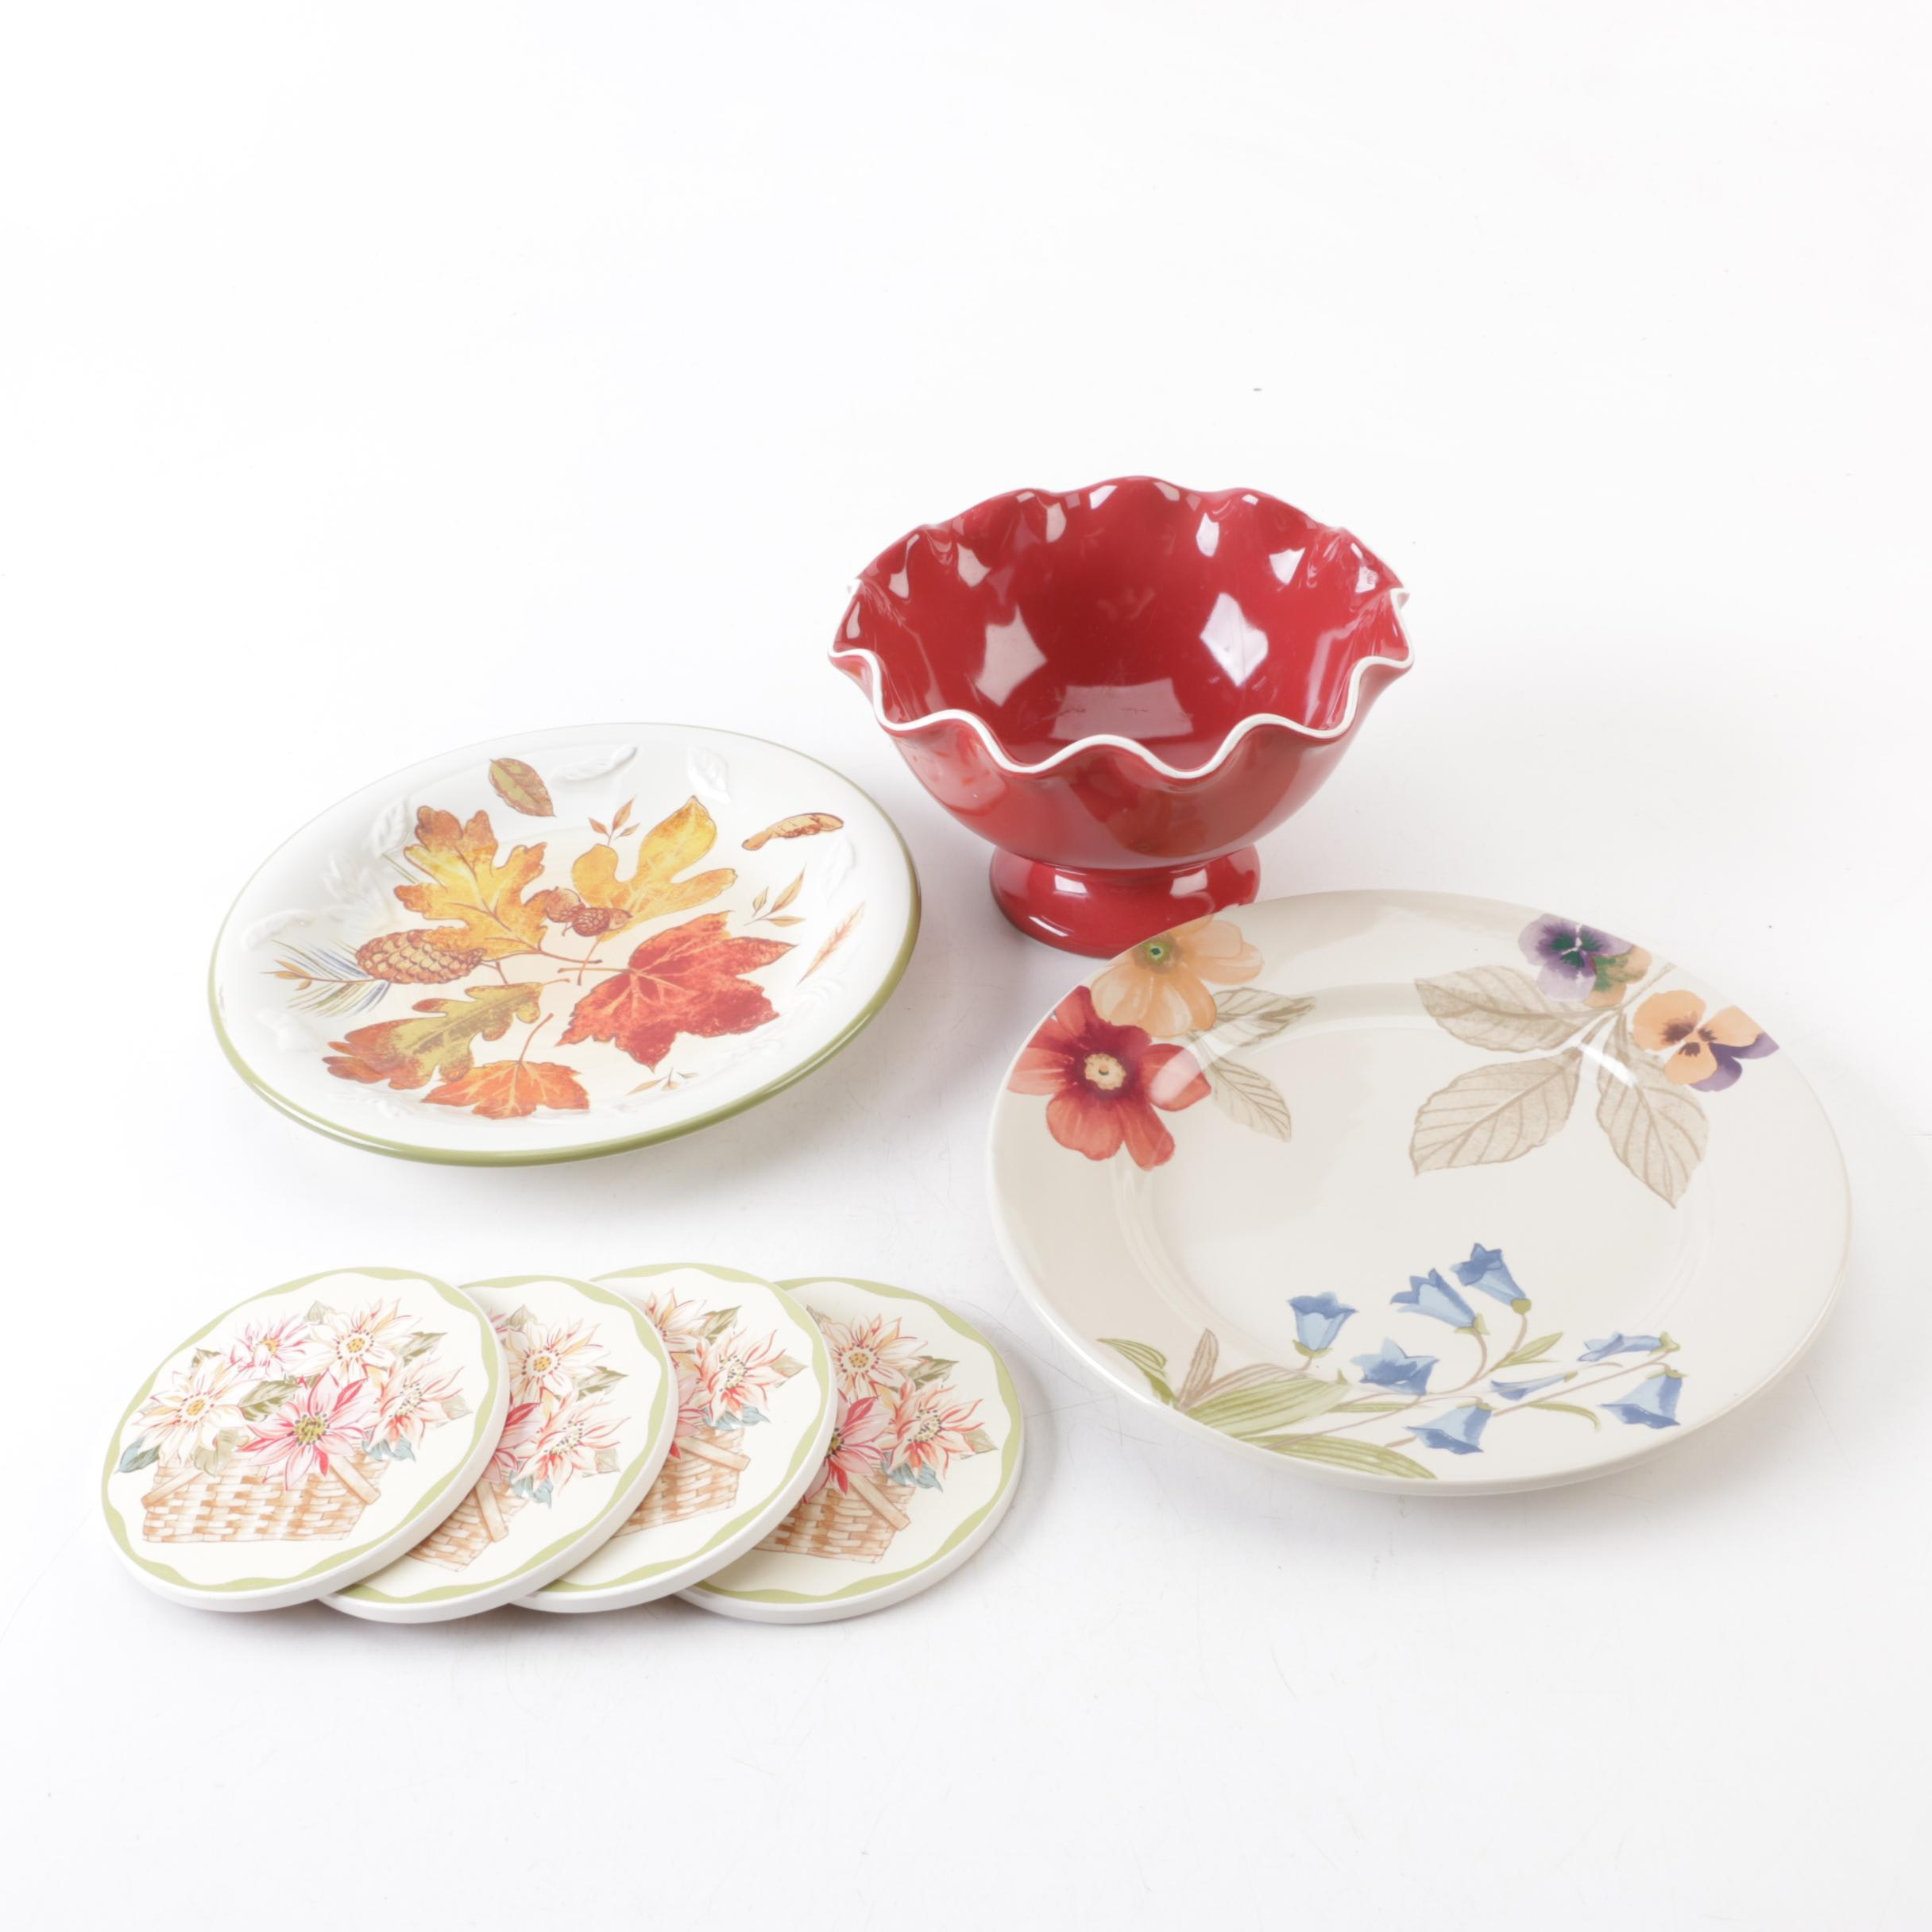 sc 1 st  EBTH.com & Longaberger Pottery Patterned Plates Red Ruffle Bowl and Coasters ...